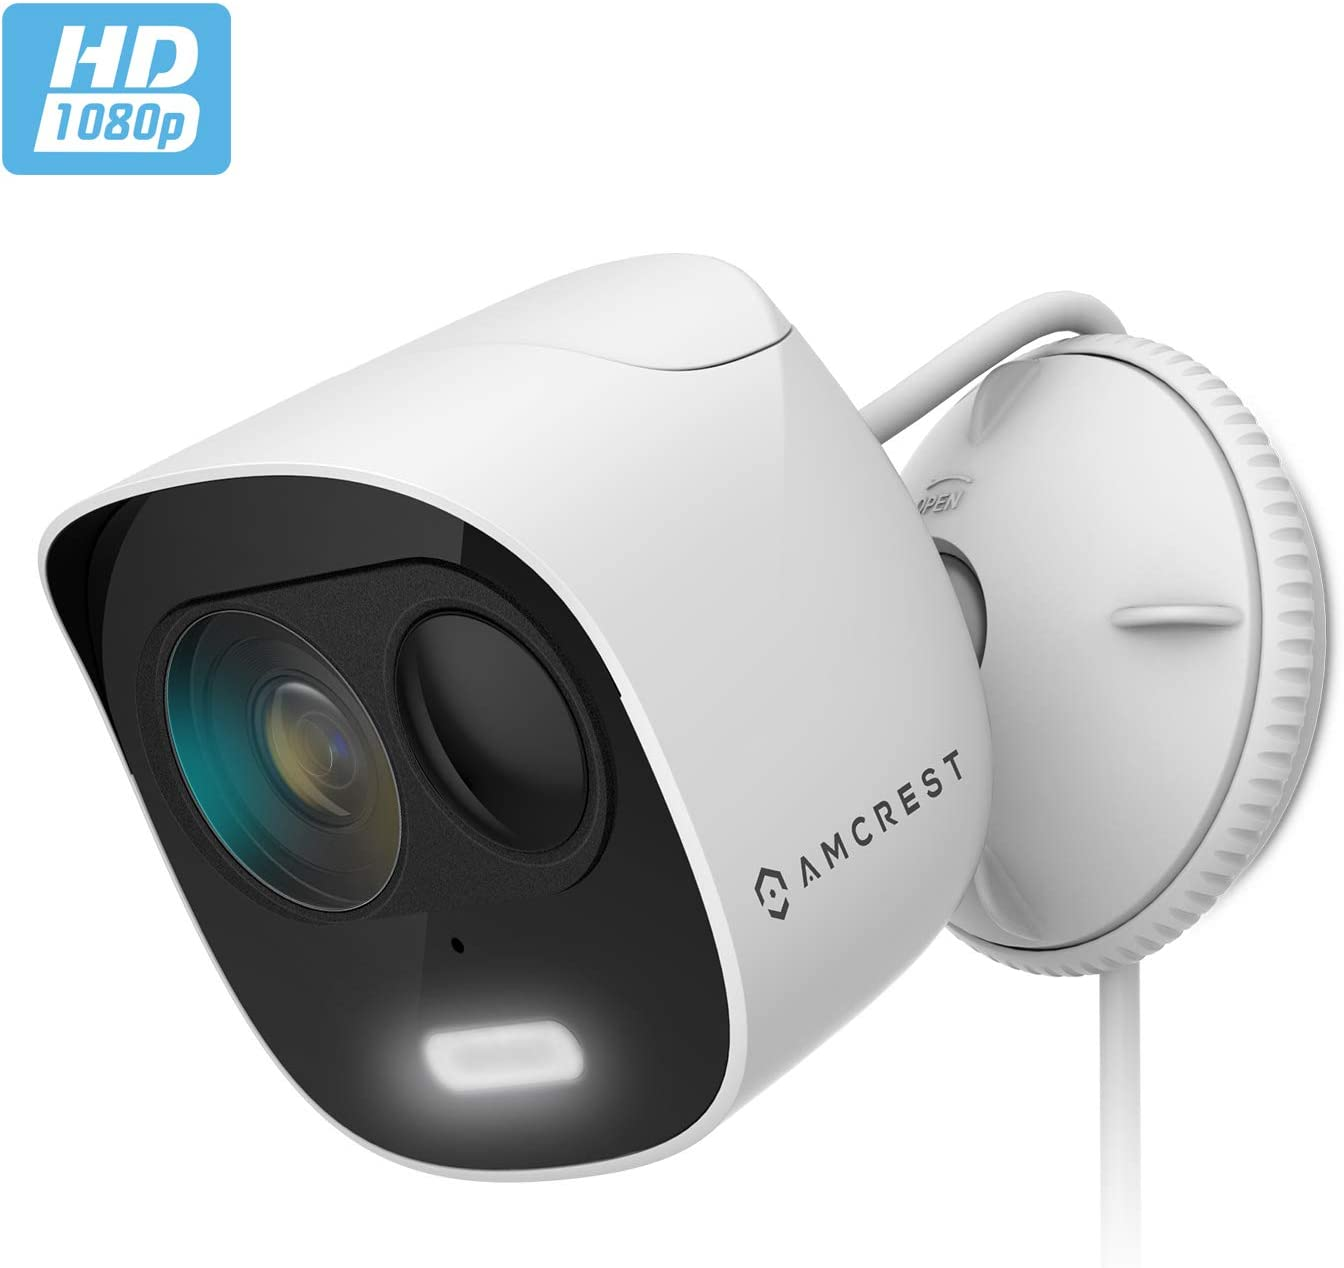 Amcrest ProHD 1080p WiFi Outdoor Security Camera with Built-in Siren Alarm, Spotlight, Strobe Light, Two-Way Audio, Night Vision, 133 View, IP65 Weatherproof, ADC2W